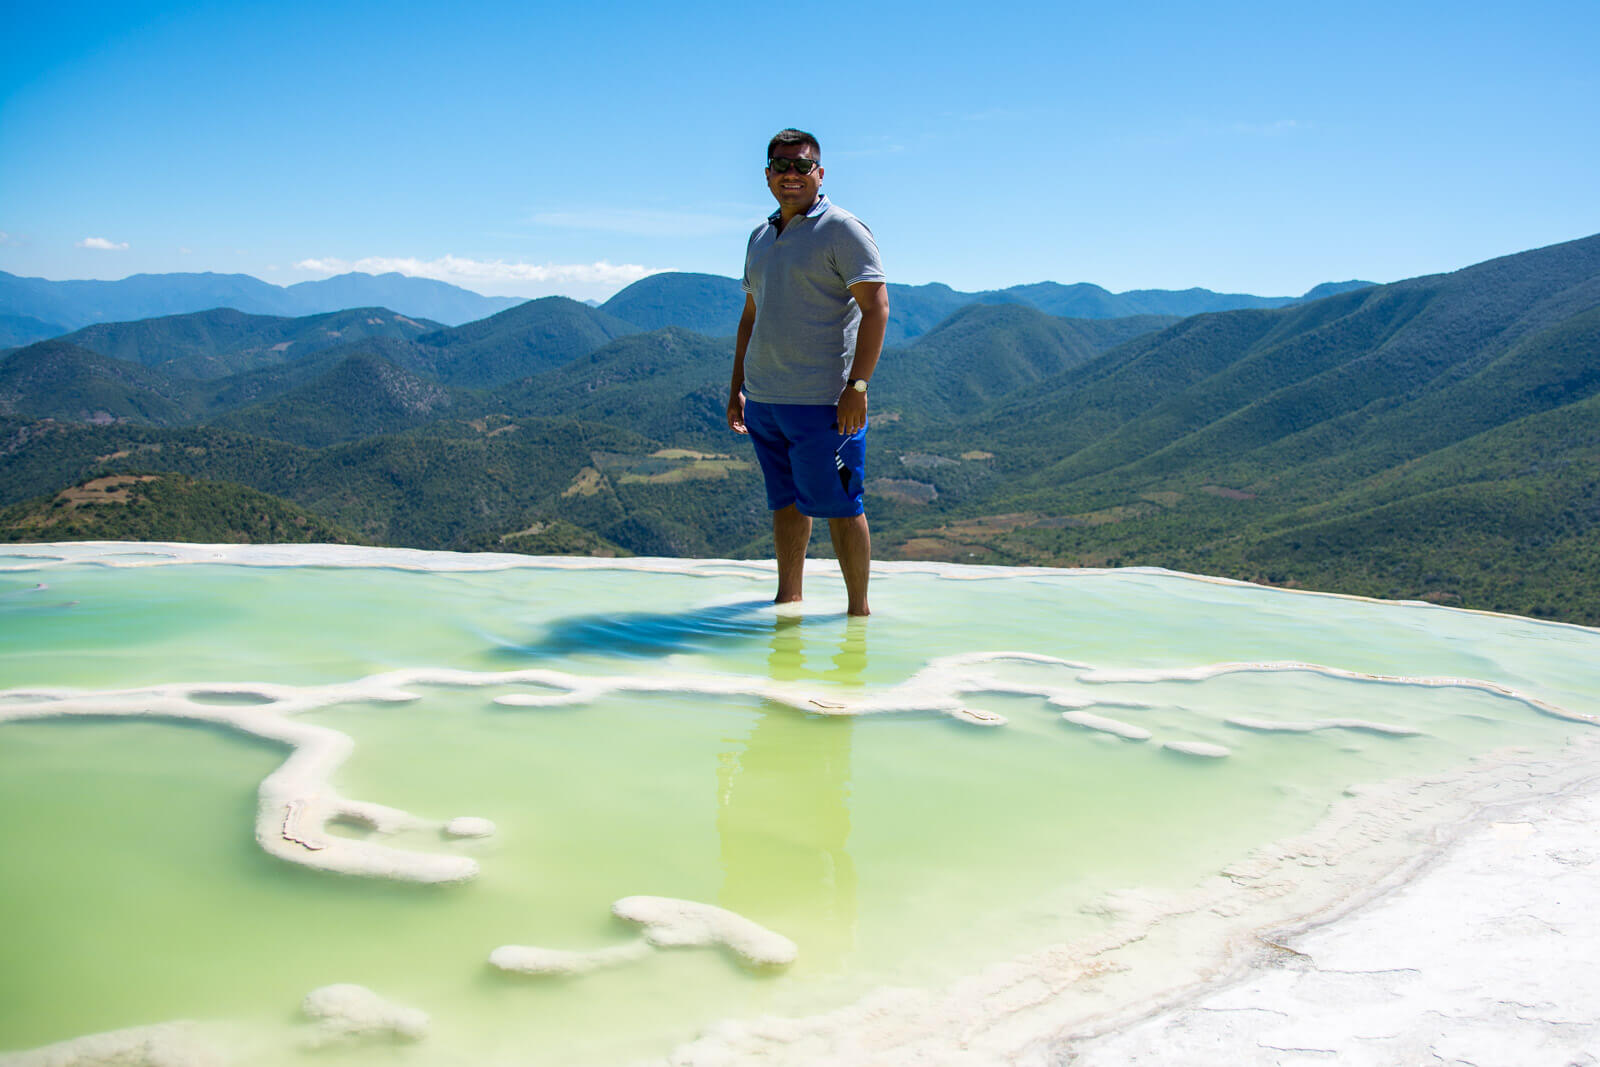 The Man of Wonders at Hierve el Agua